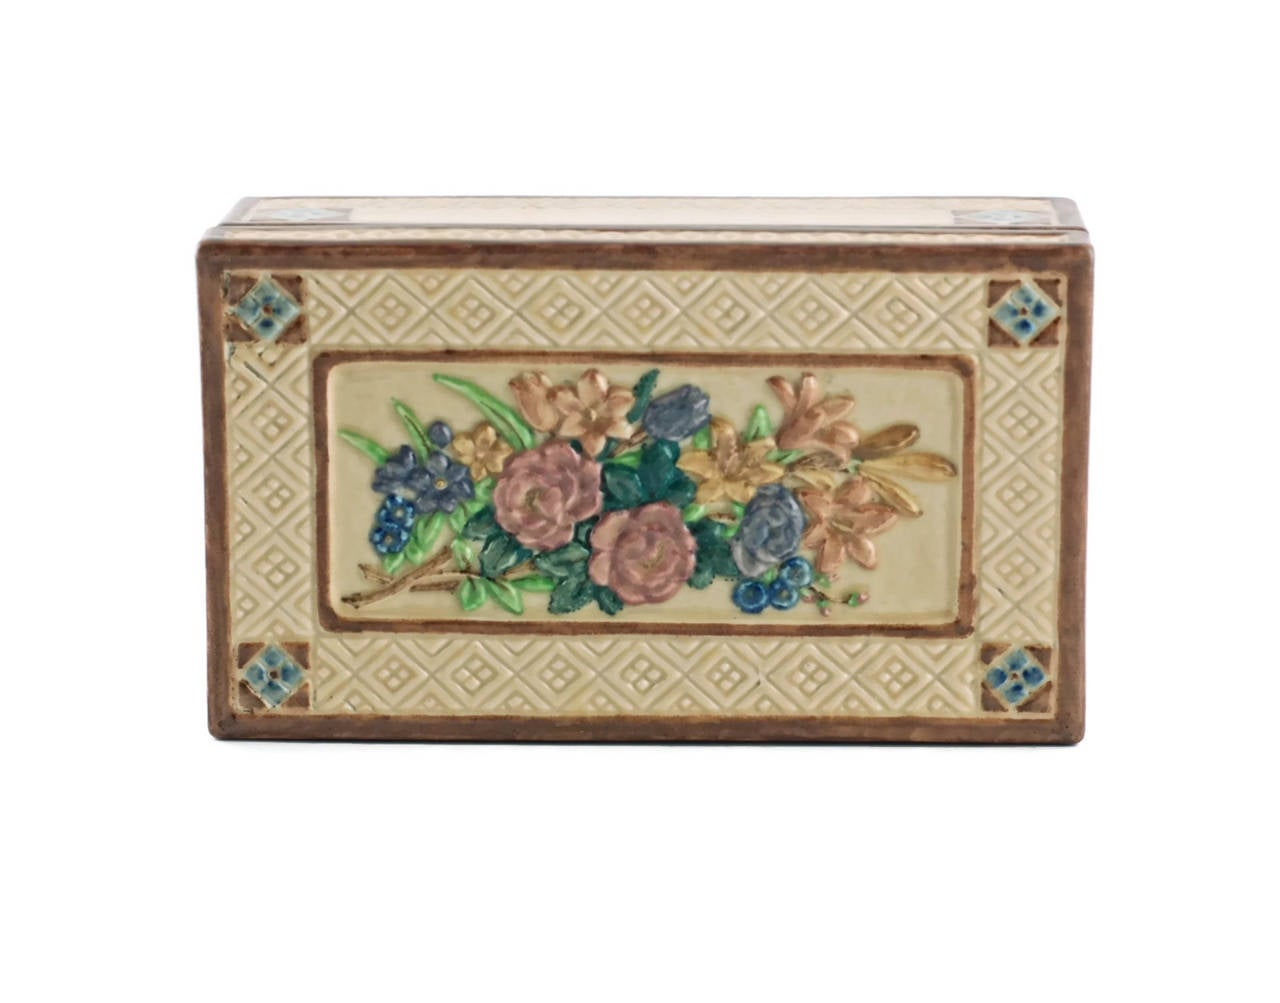 Arts and Crafts Signed Sara Sax Rookwood Pottery Lidded Rectangular Box For Sale